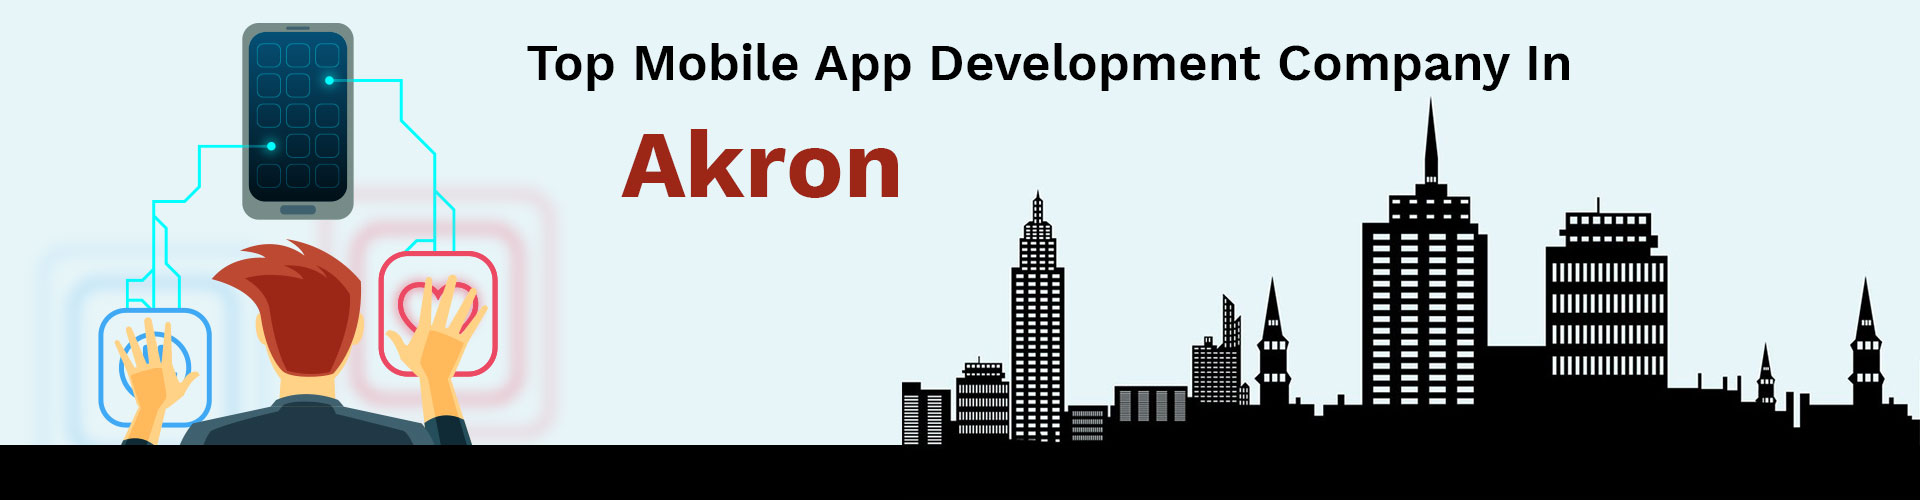 mobile app development company akron